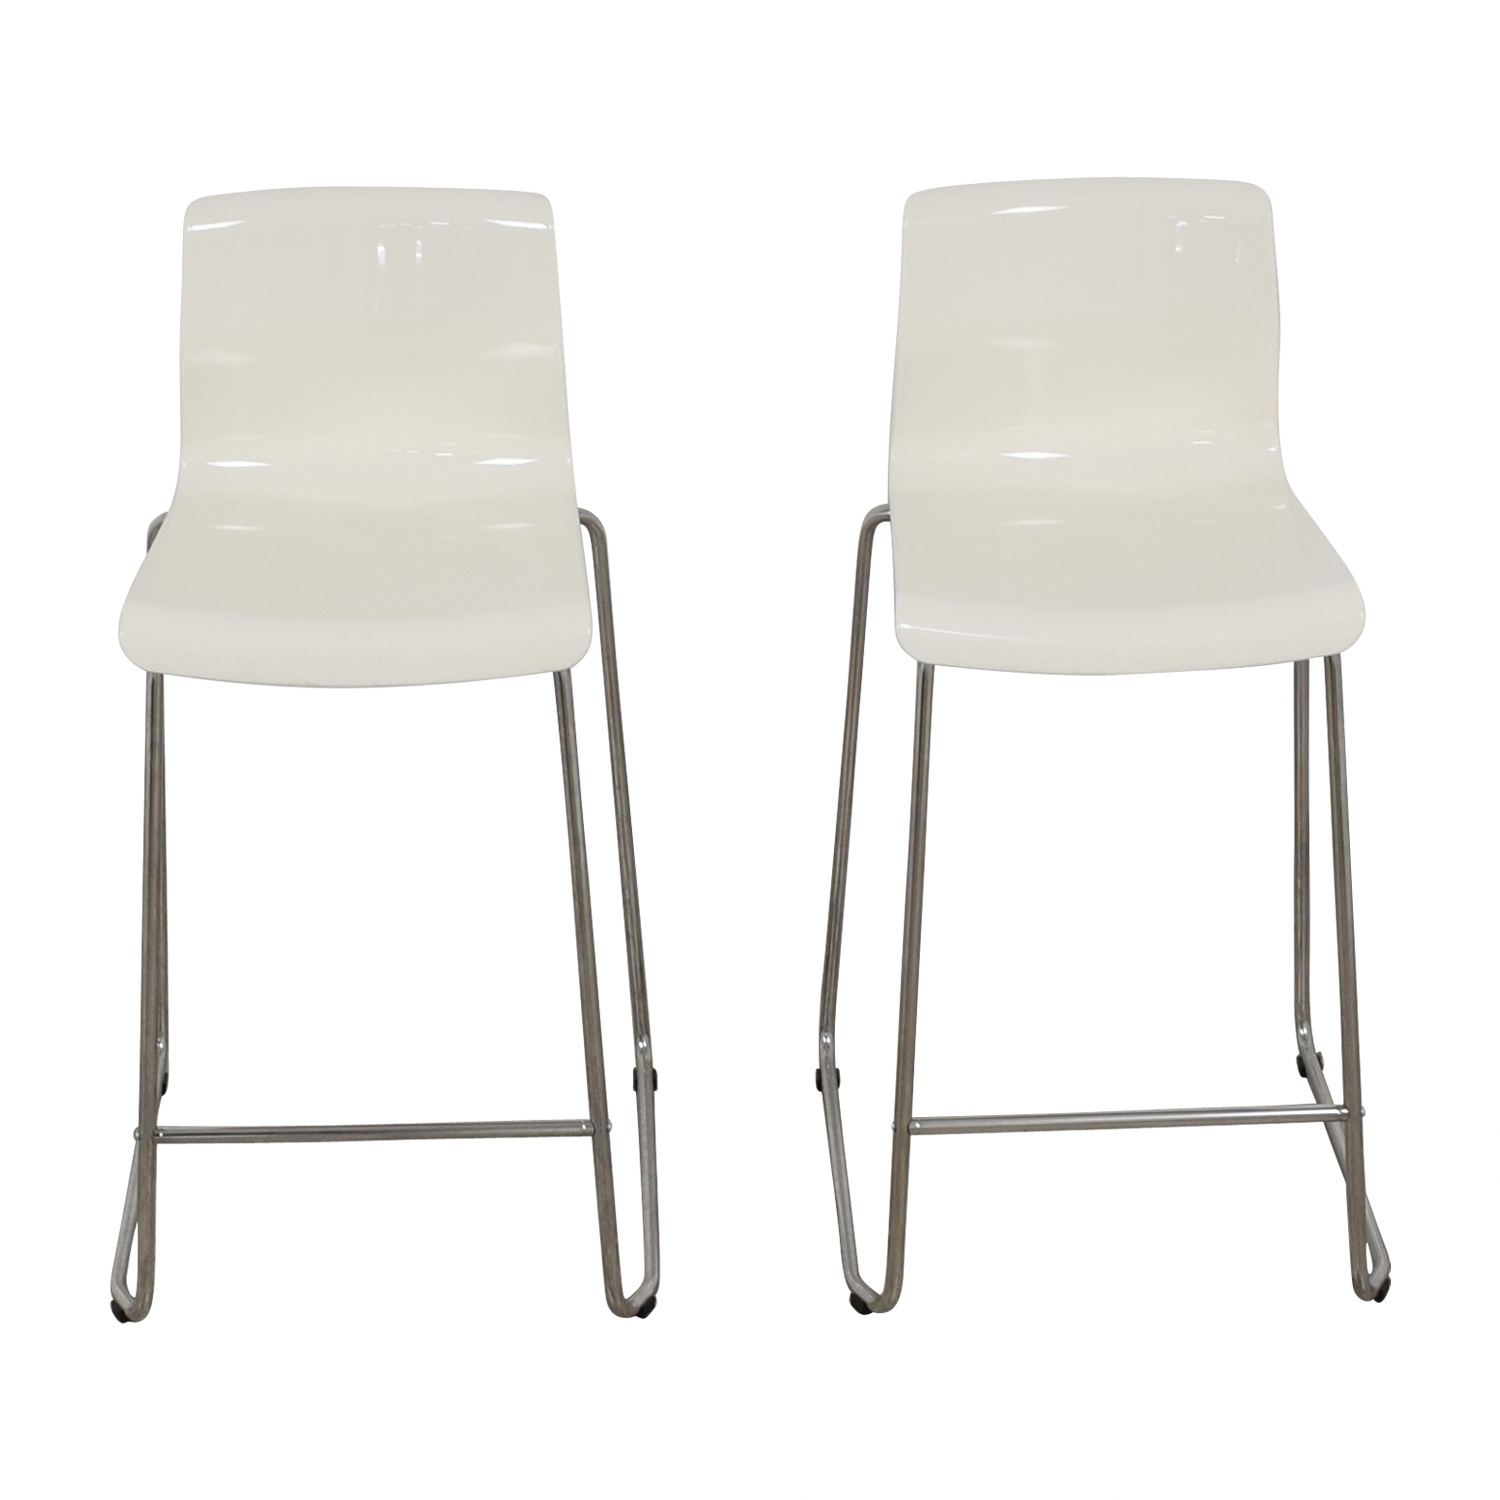 Fantastic 57 Off Ikea Ikea Glenn White Bar Stools Chairs Unemploymentrelief Wooden Chair Designs For Living Room Unemploymentrelieforg